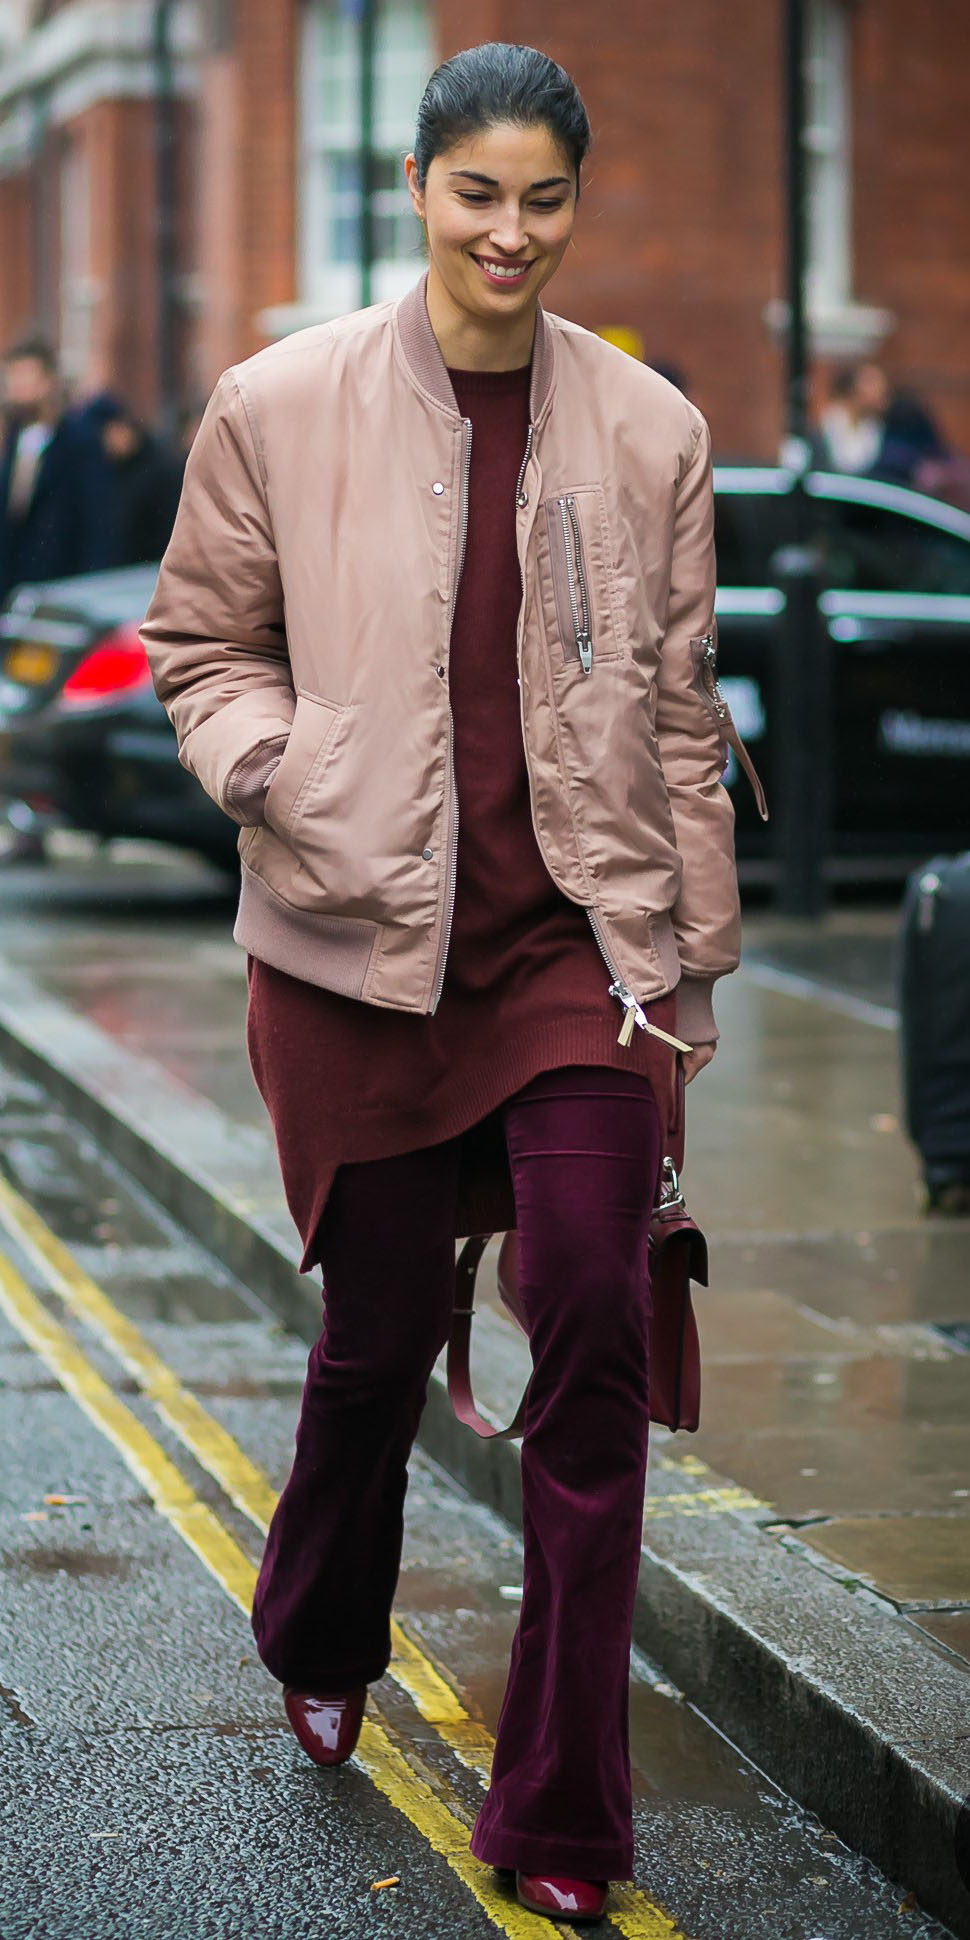 purple-royal-flare-jeans-burgundy-sweater-tunic-pink-light-jacket-bomber-brun-bun-burgundy-shoe-booties-tonal-fall-winter-lunch.jpg